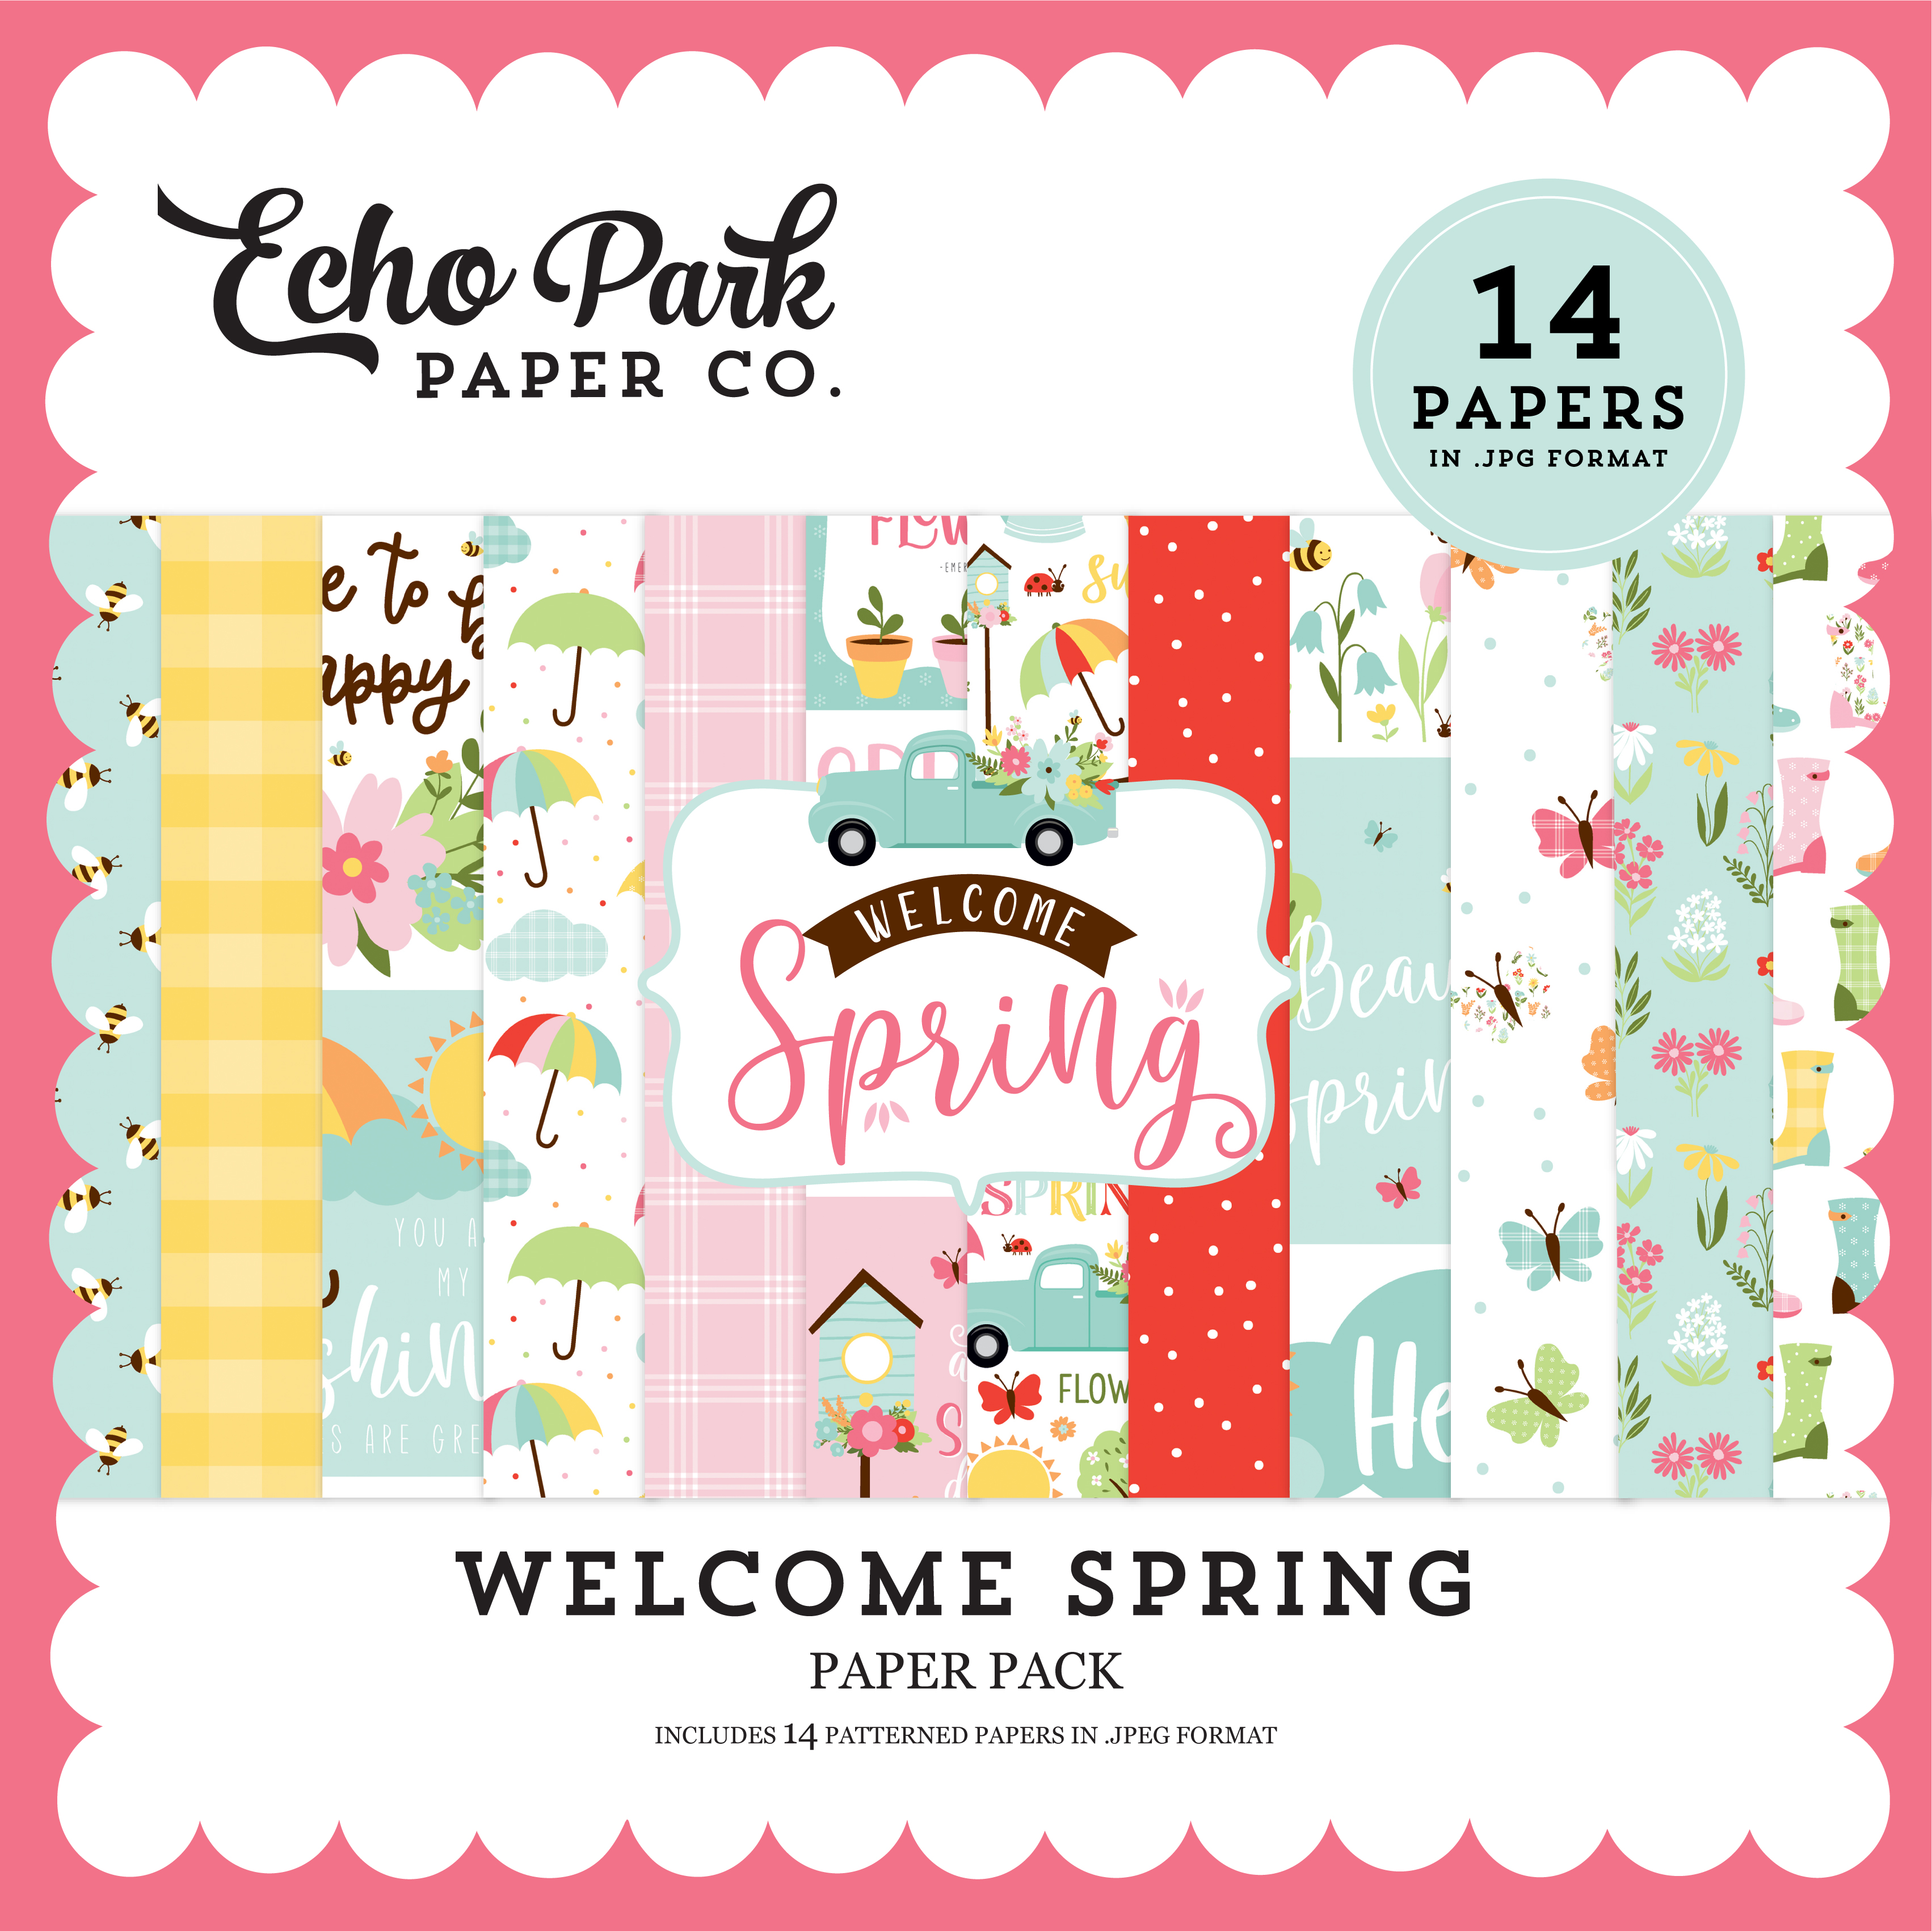 Welcome Spring Paper Pack